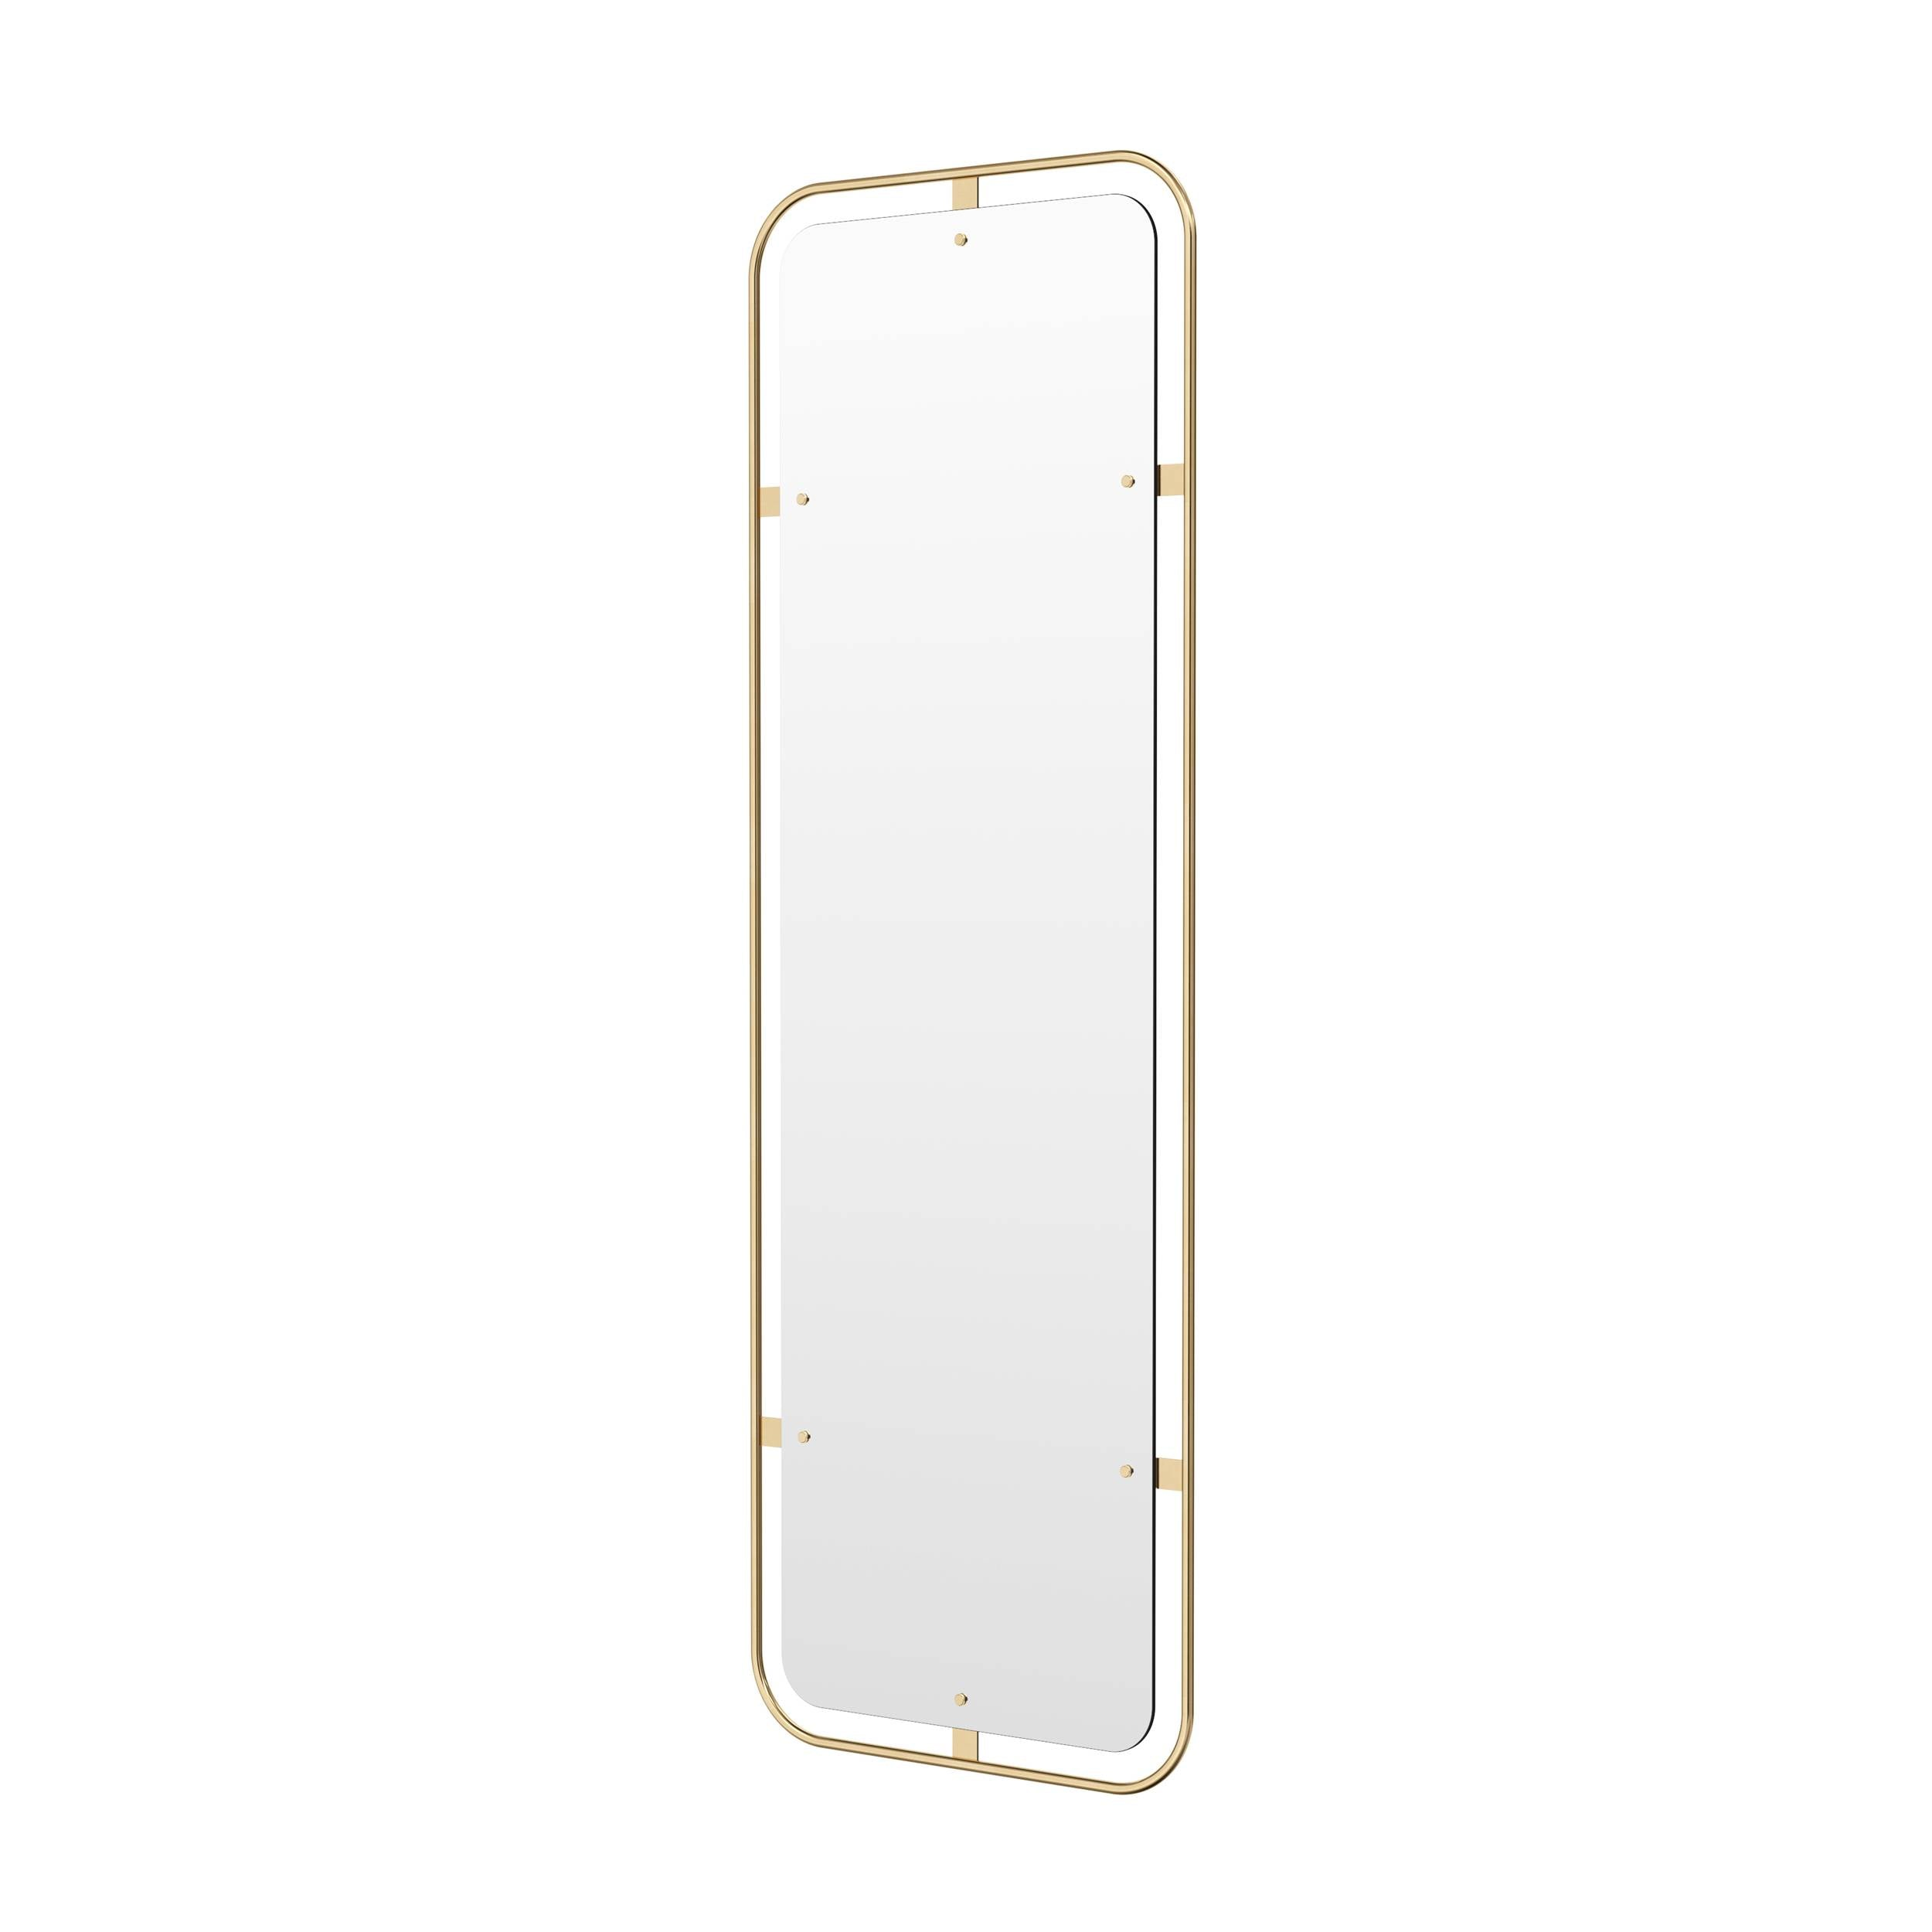 Nimbus Rectangular Mirror: Polished Brass